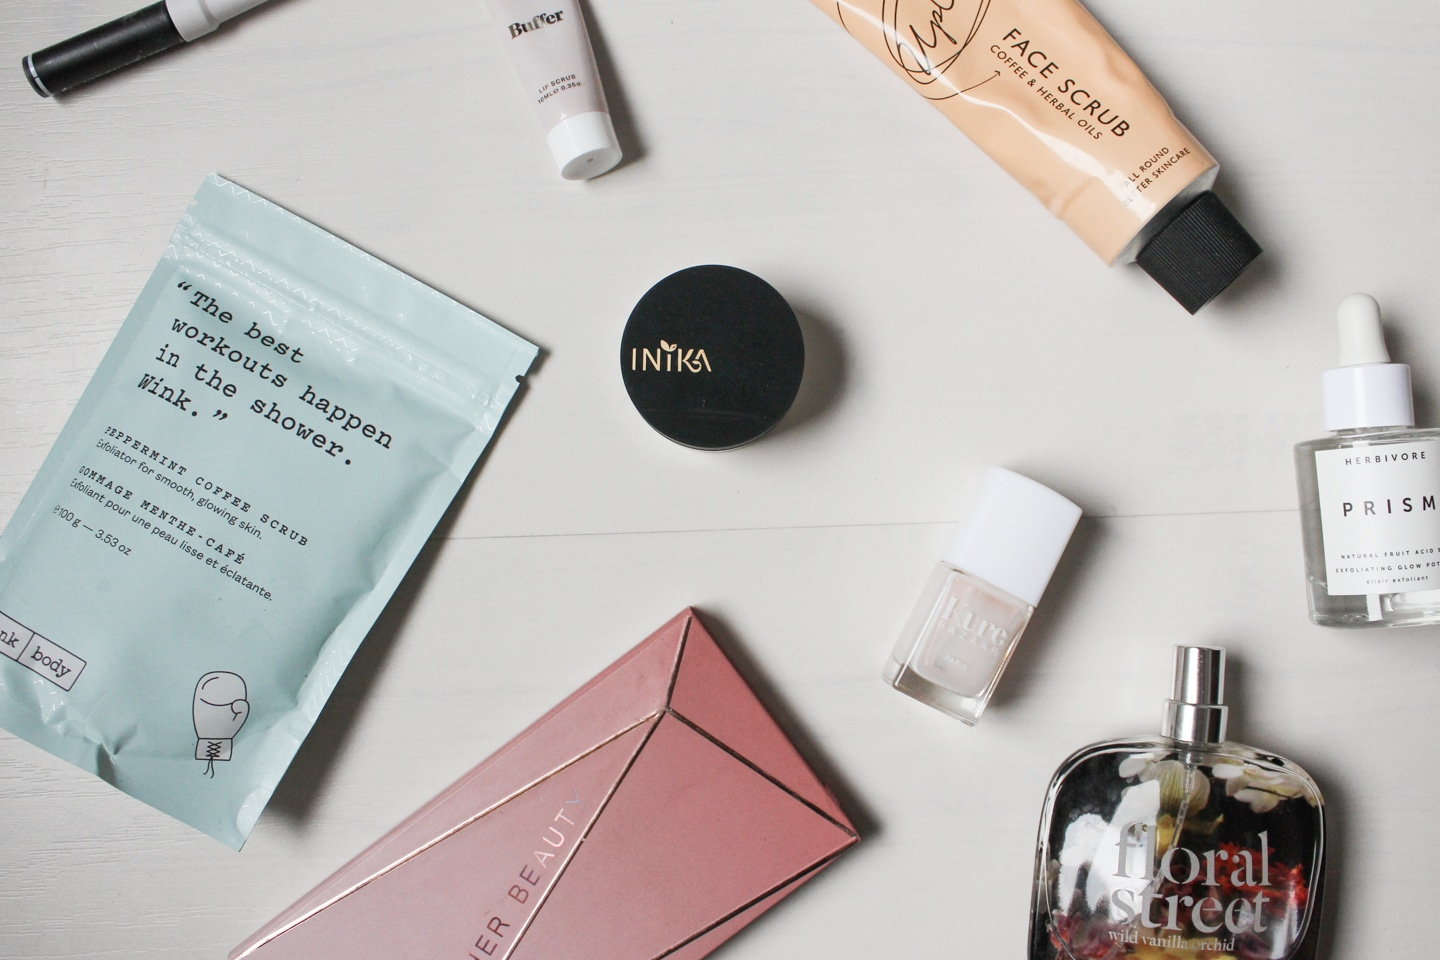 Different vegan beauty and skincare products